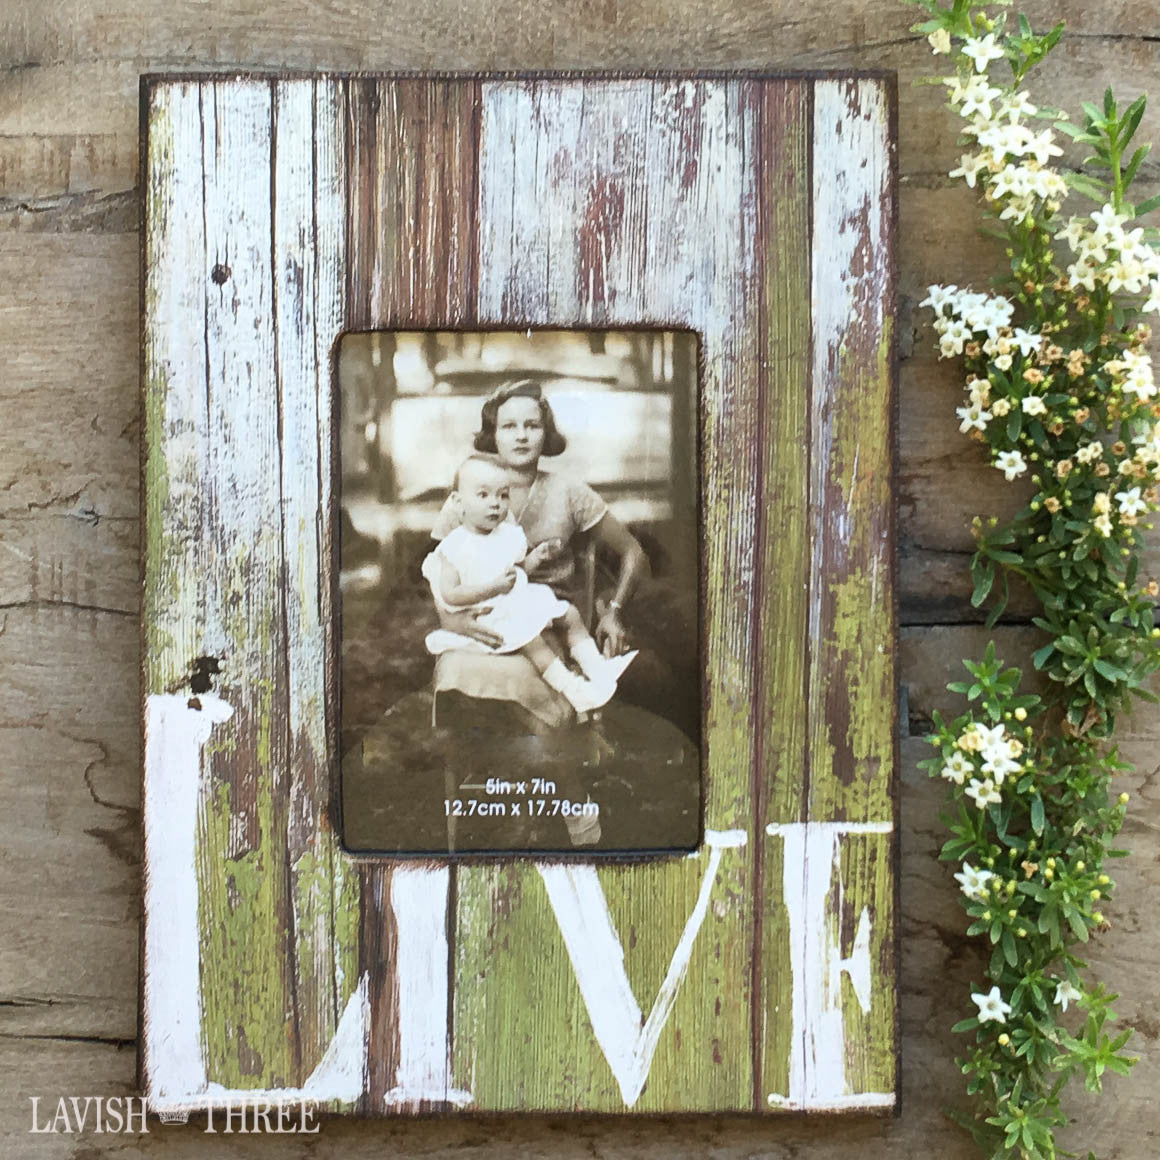 5x7 Vertical Country farmhouse distressed wood frame green with white LIVE painted